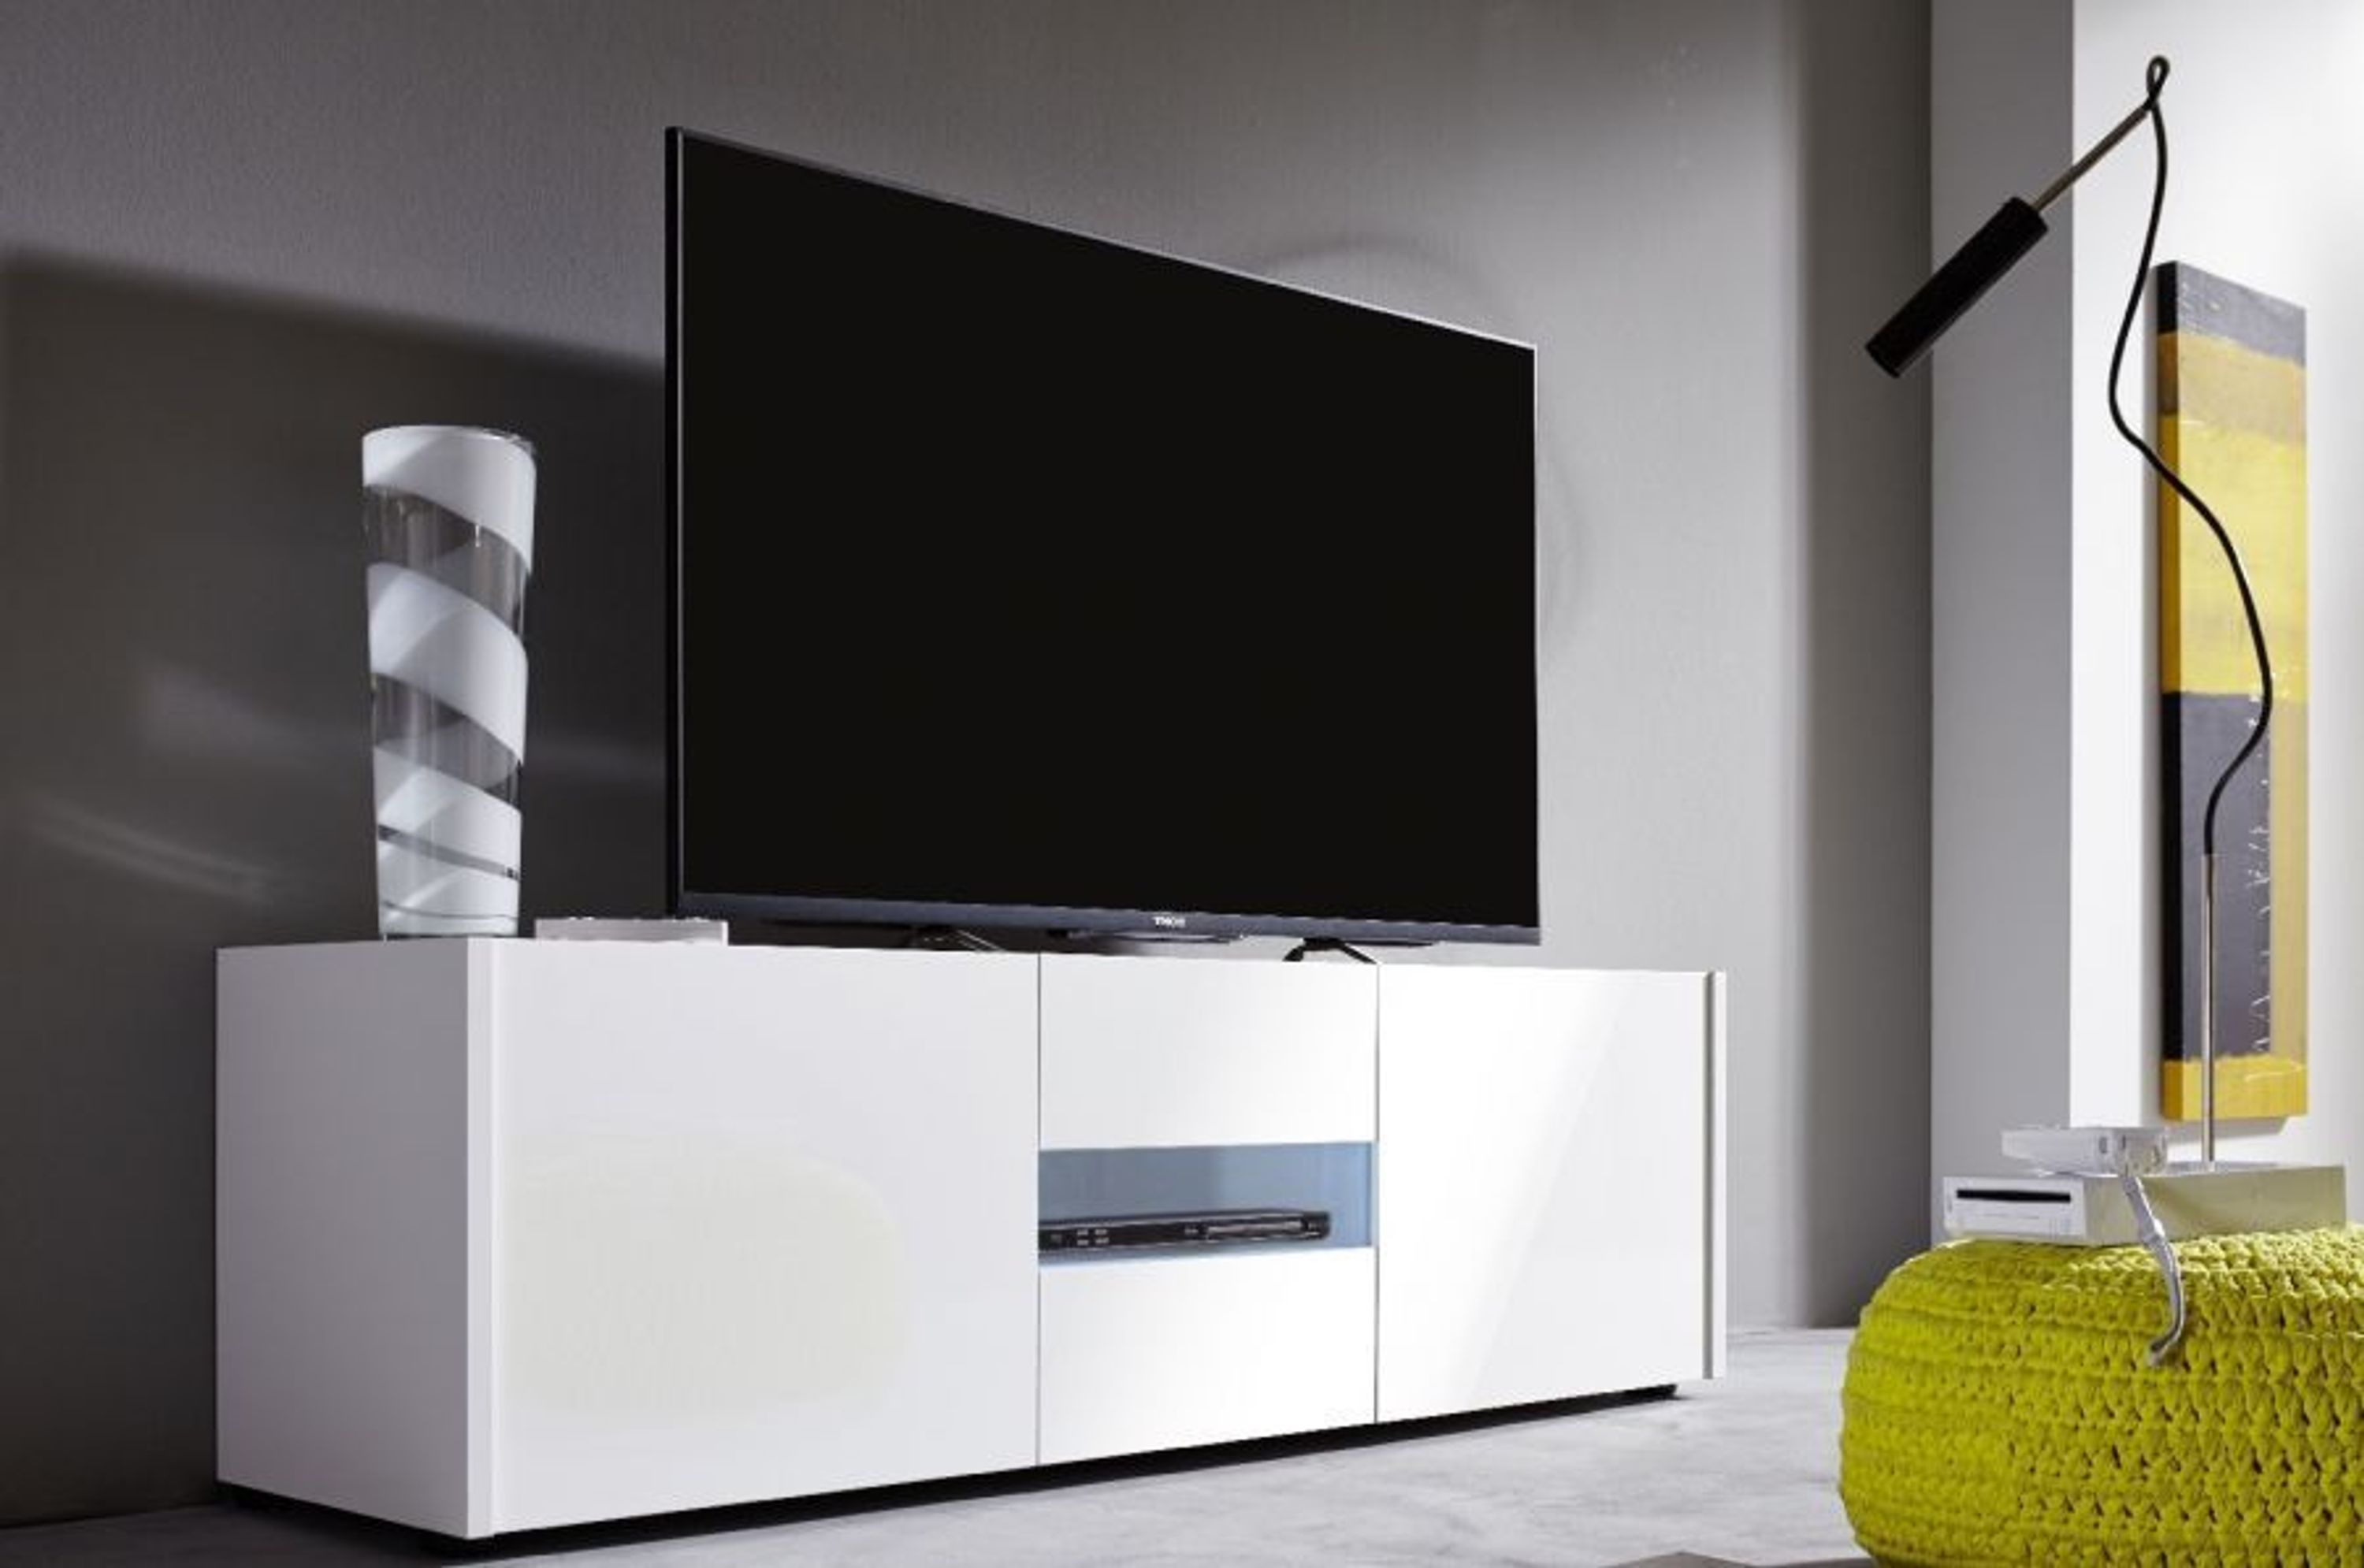 lowboard tv unterteil imola wei echt hochglanz lackiert. Black Bedroom Furniture Sets. Home Design Ideas